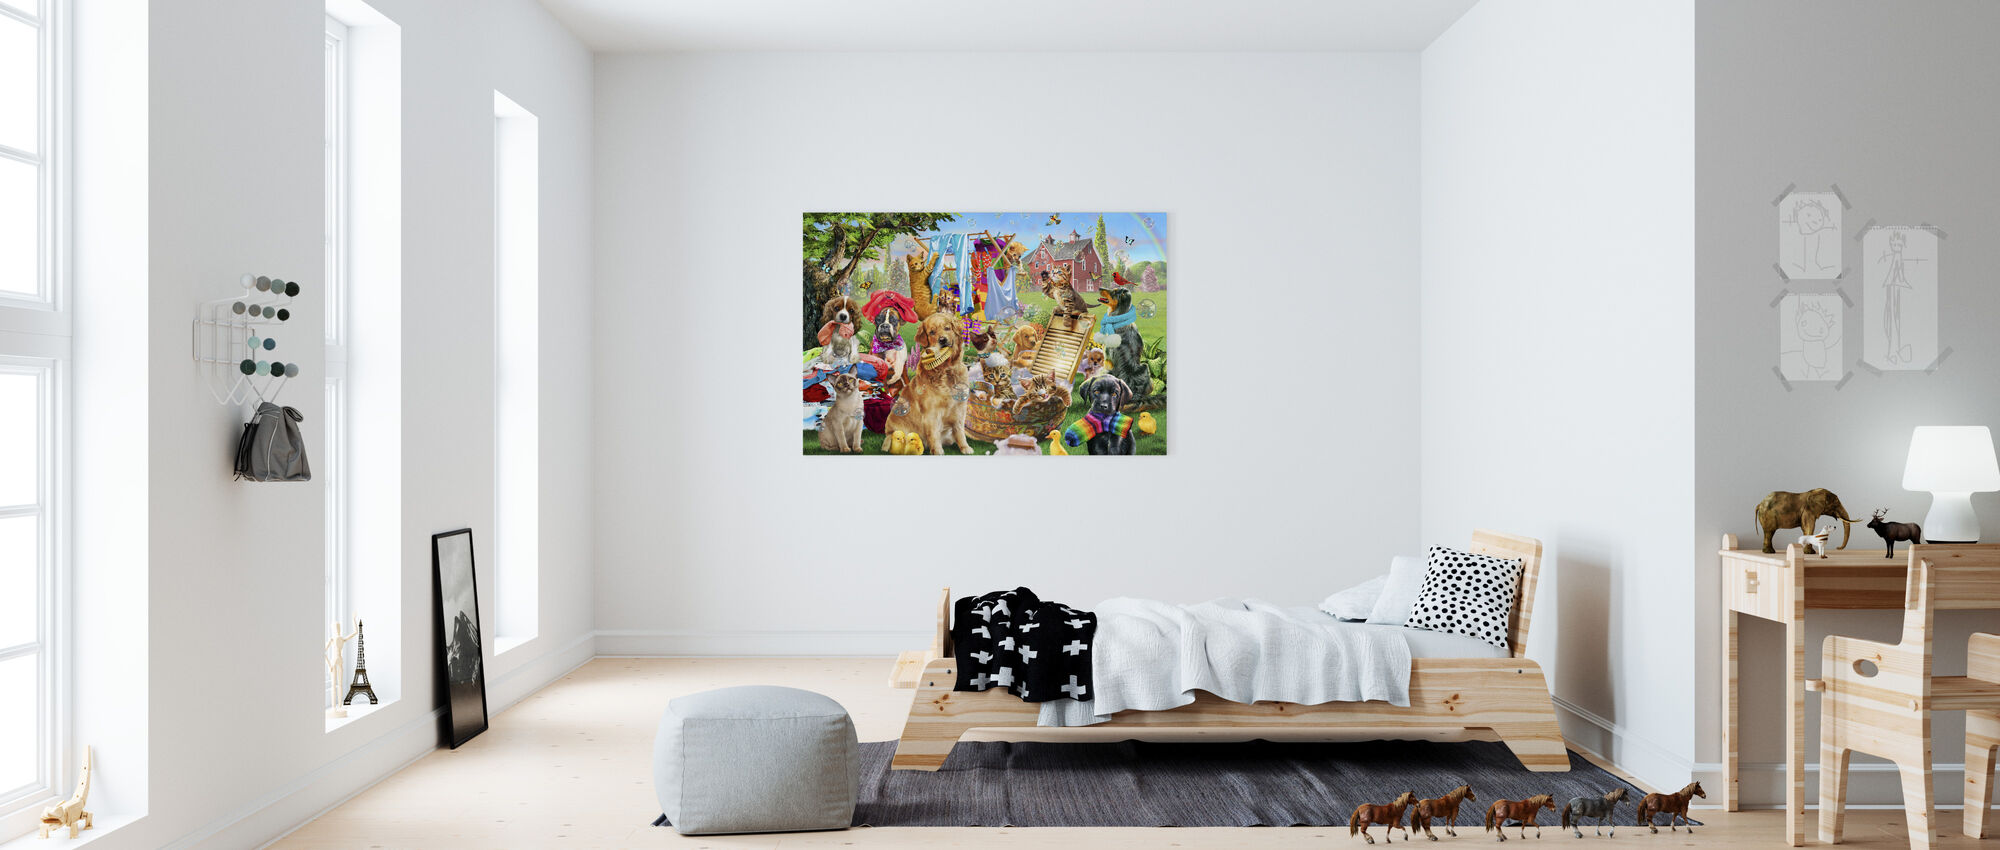 Pets On Wash Day - Canvas print - Kids Room